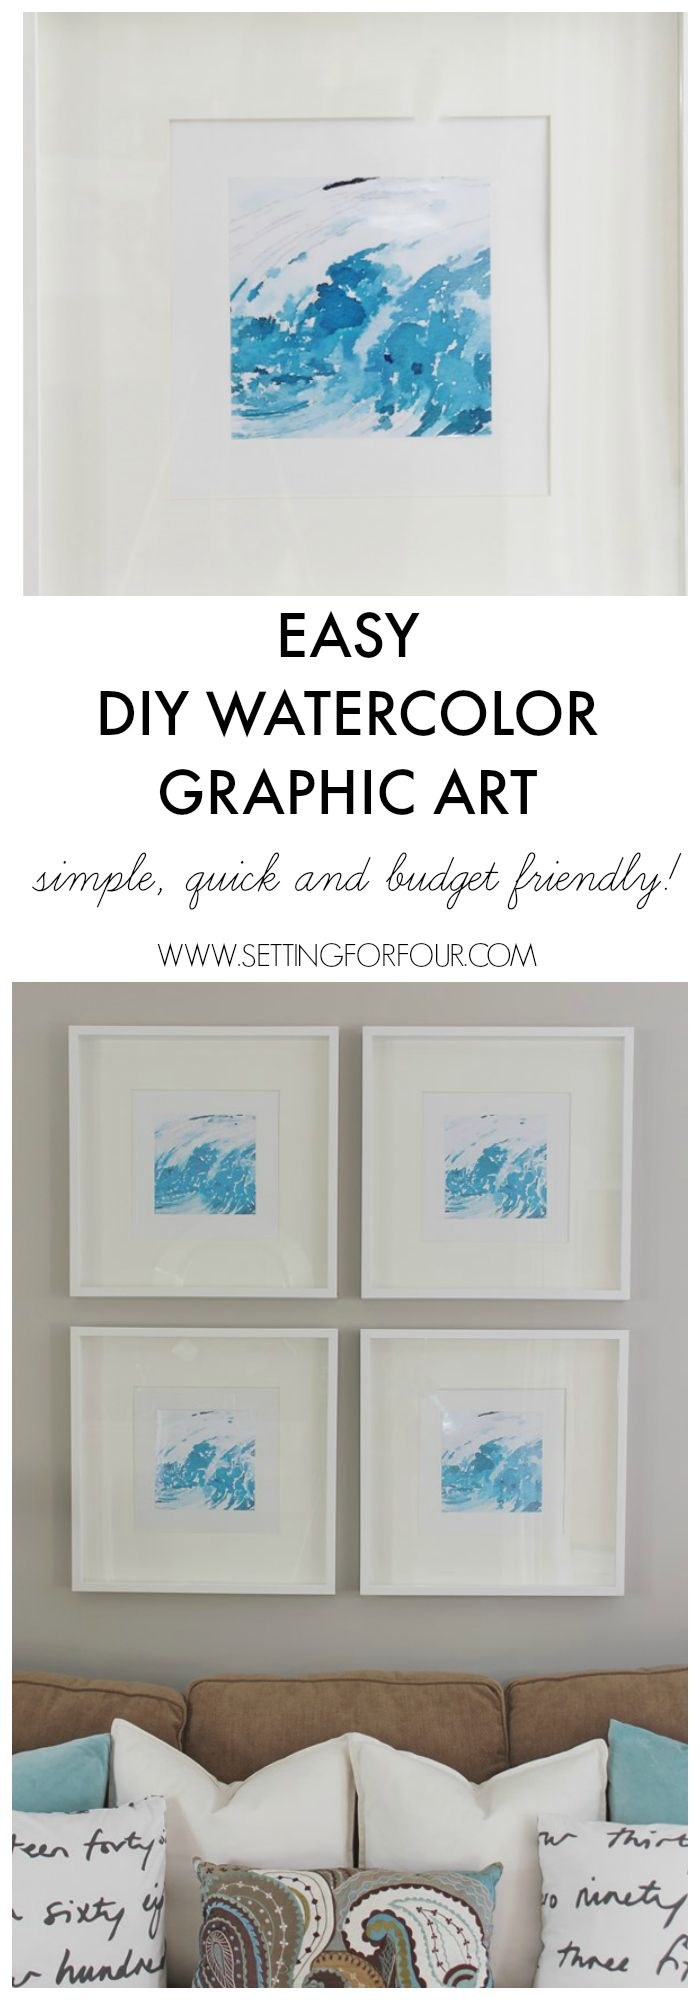 Easy Diy Watercolor Abstract Wall Art Watercolor Art Diy Diy